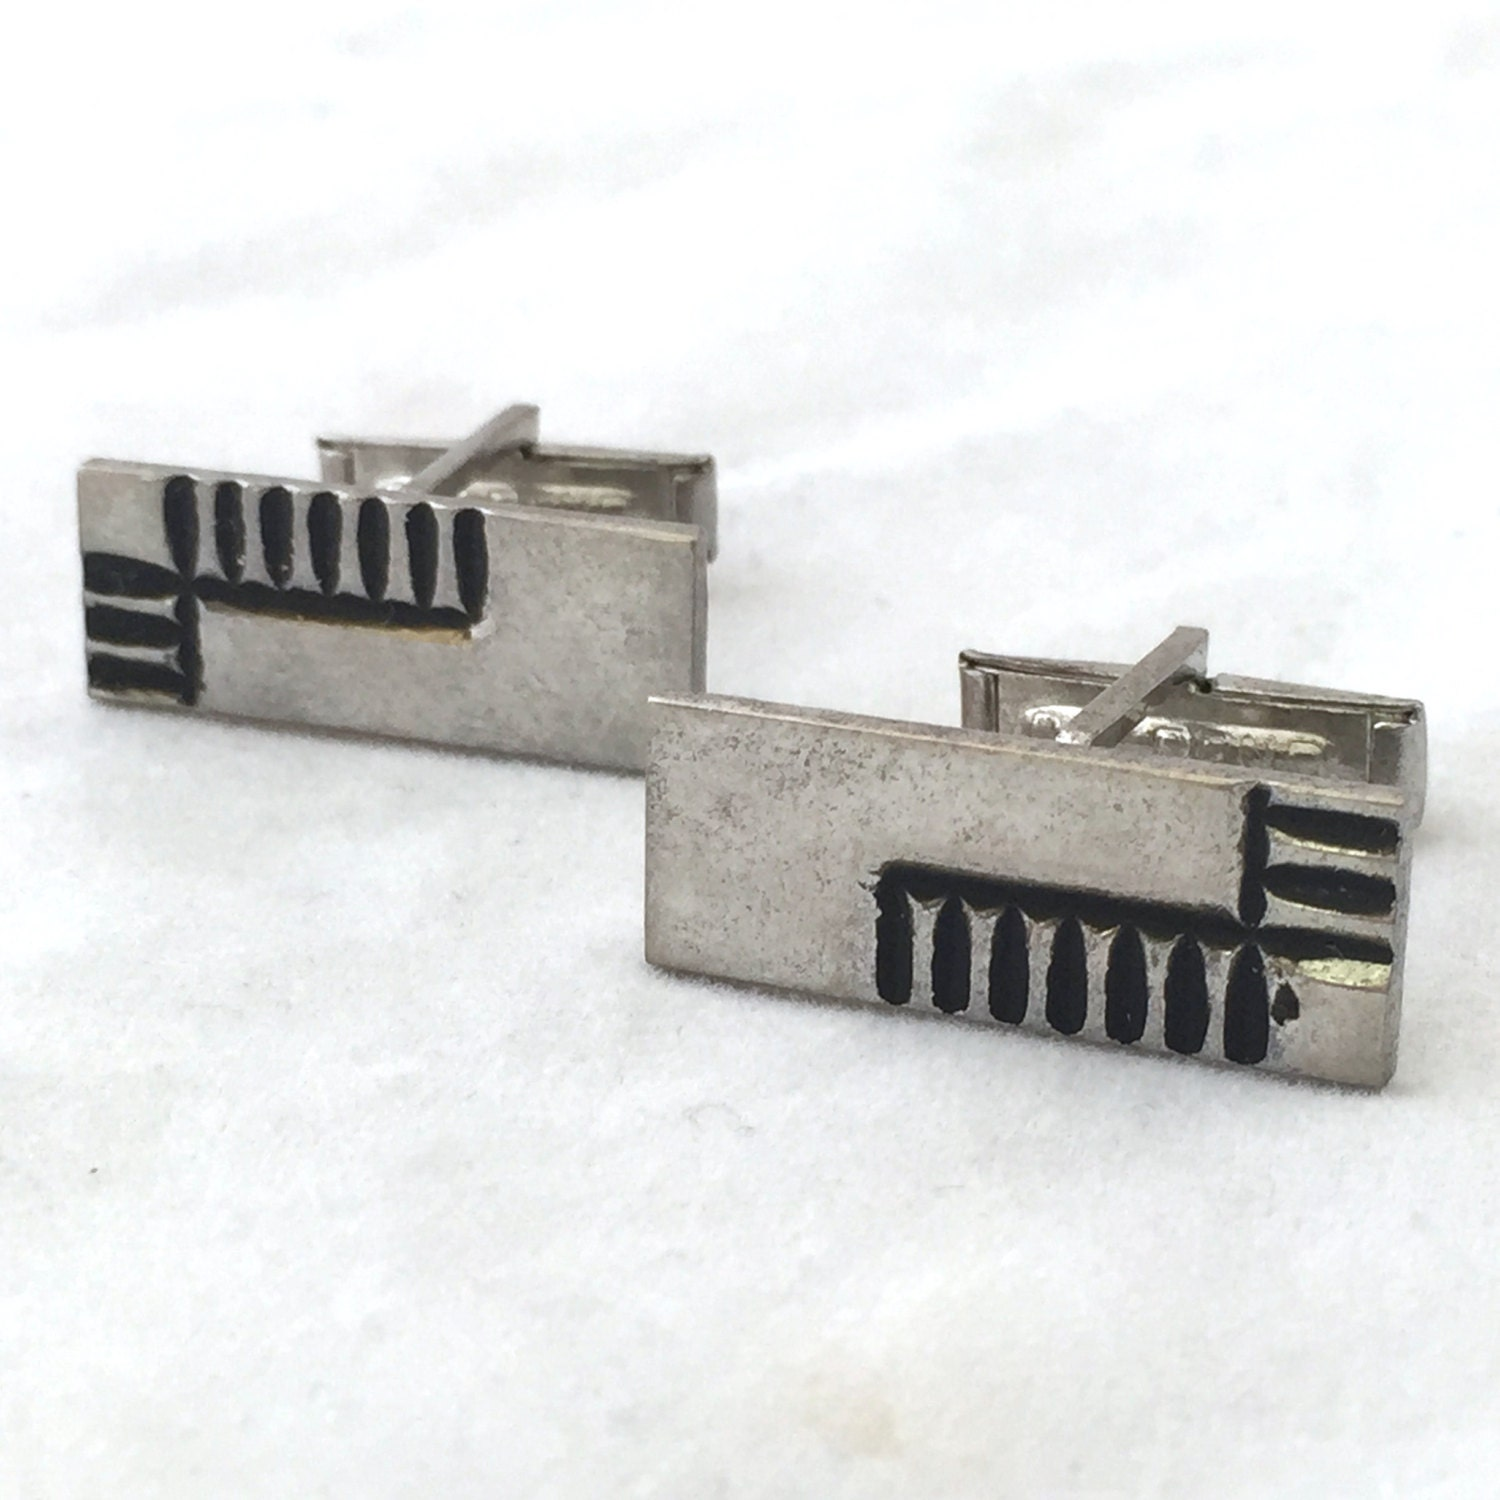 Cuff Links Tie Clips Circuit Board Cufflinks Silver Tone Rectangle Tribal Gray And Black Vintage Embellished